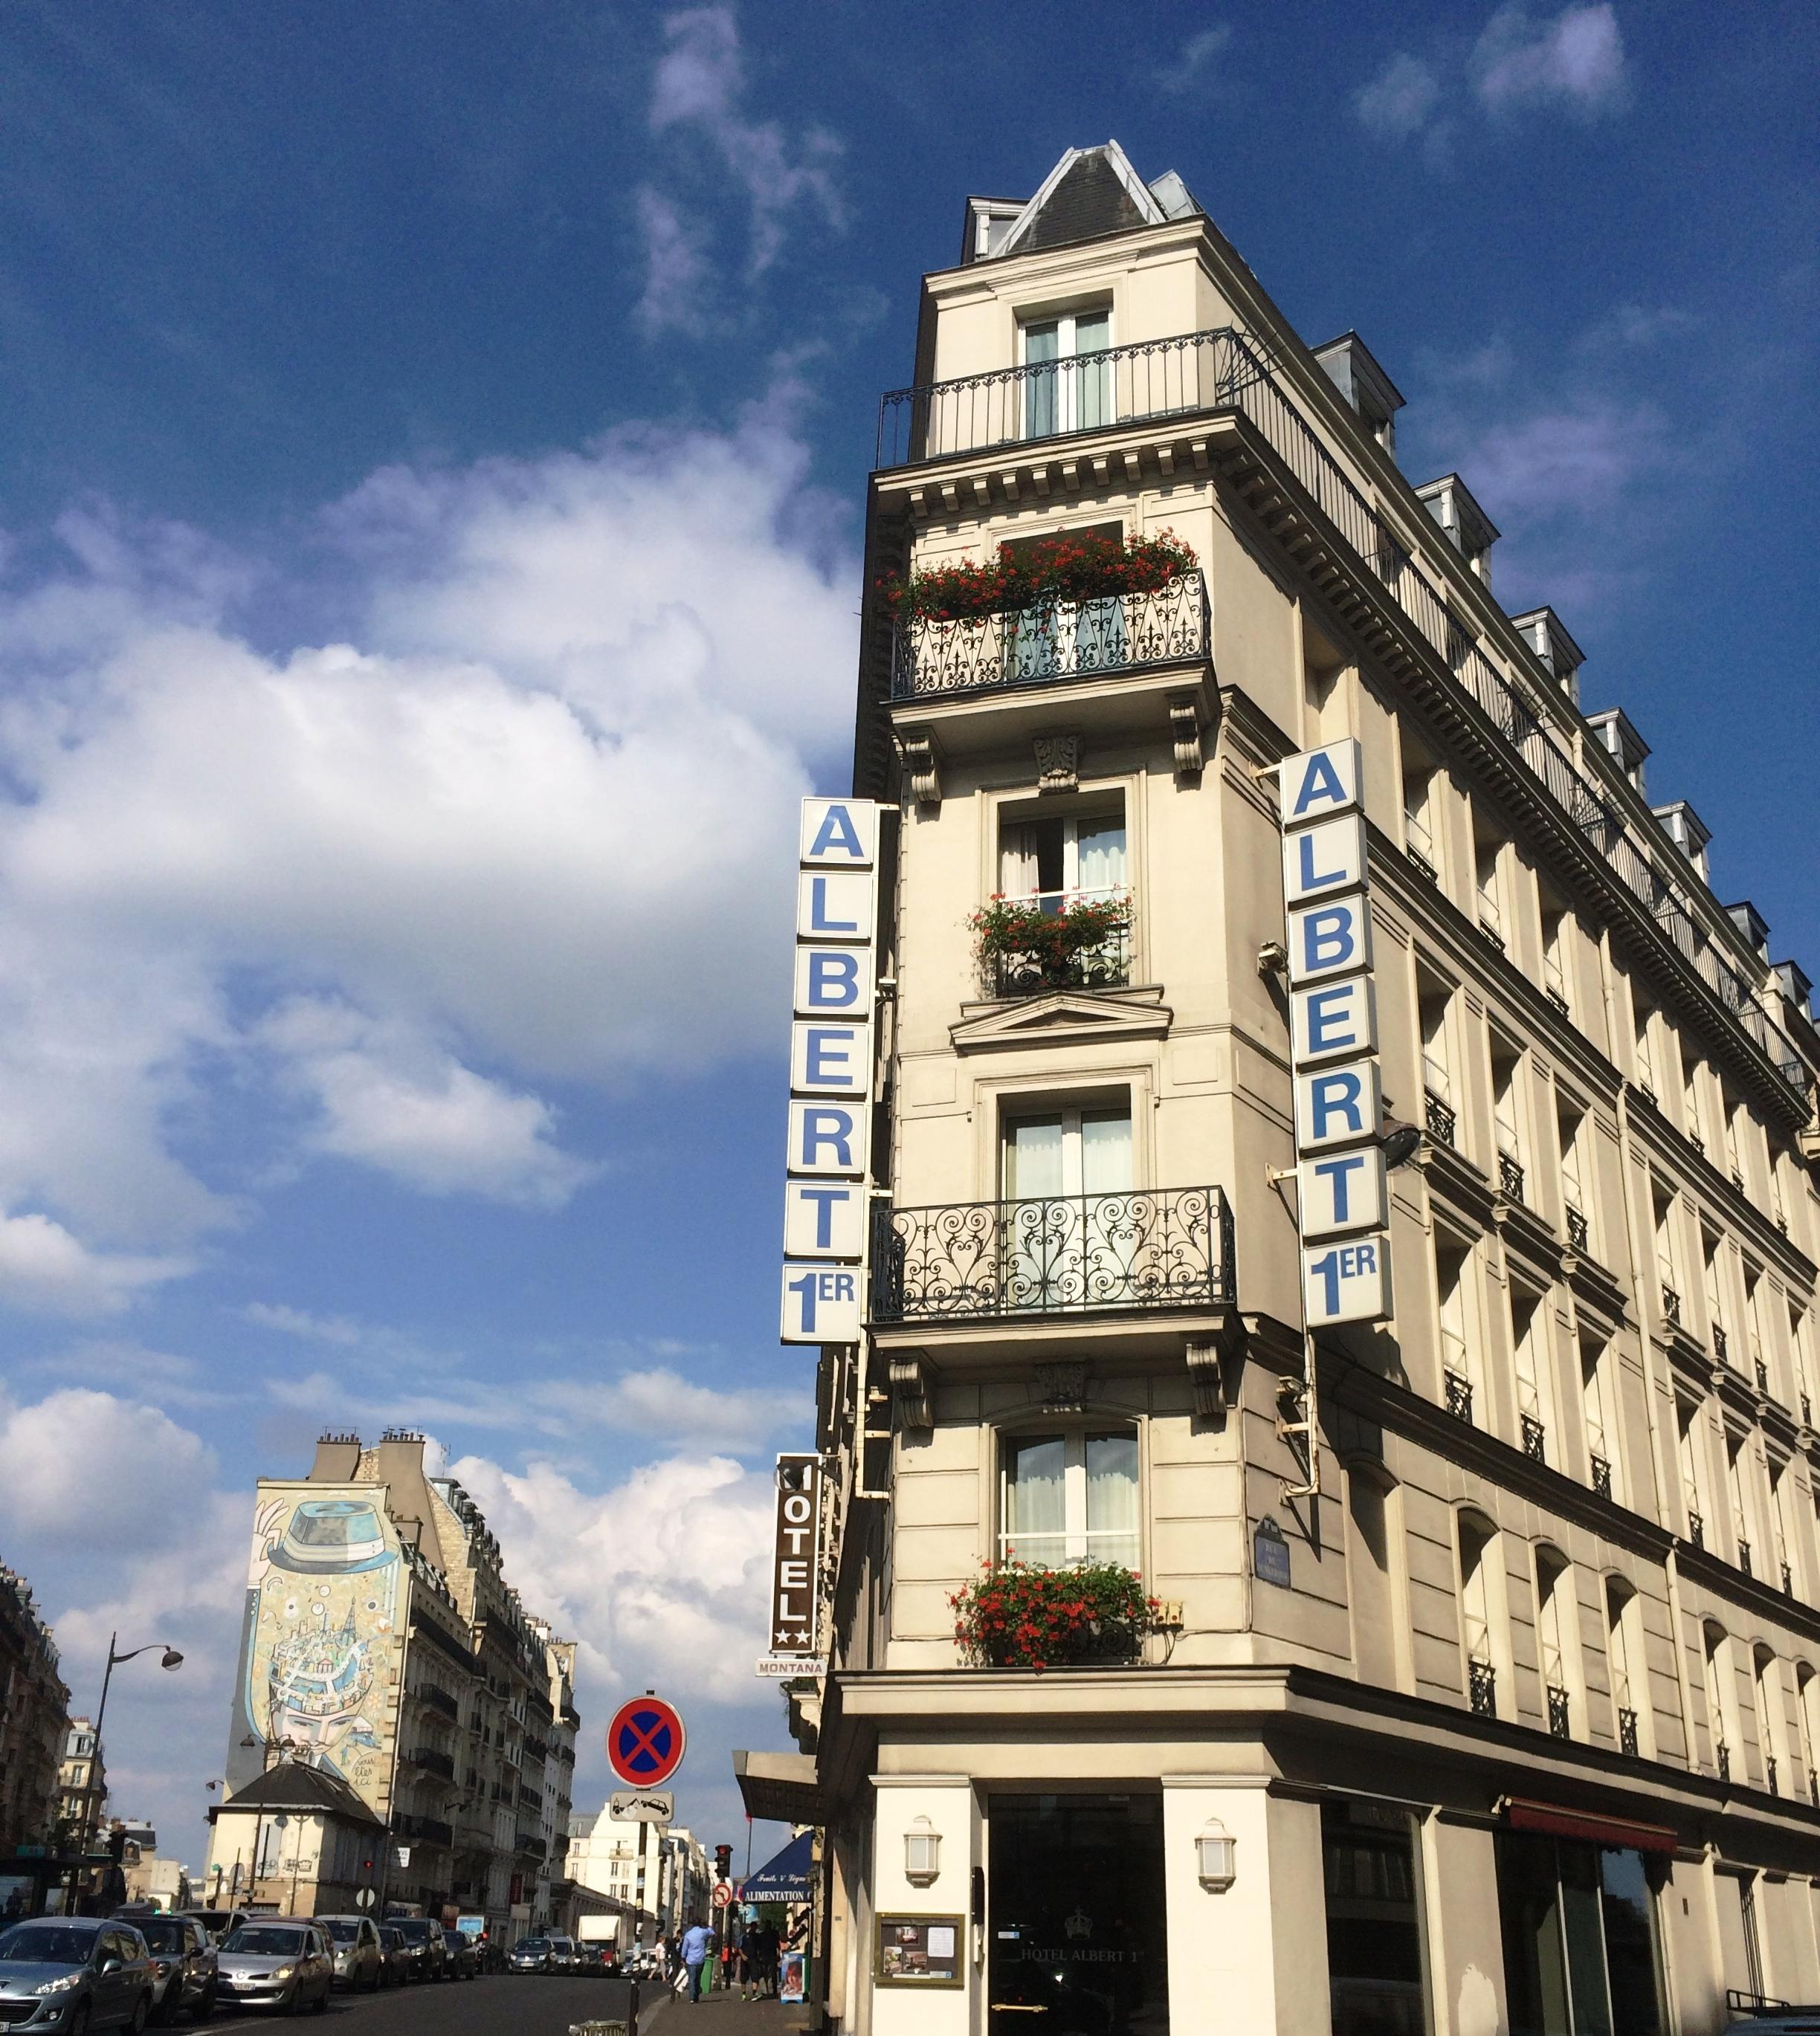 Holidays at Albert 1er Hotel in Gare du Nord & Republique (Arr 10 & 11), Paris